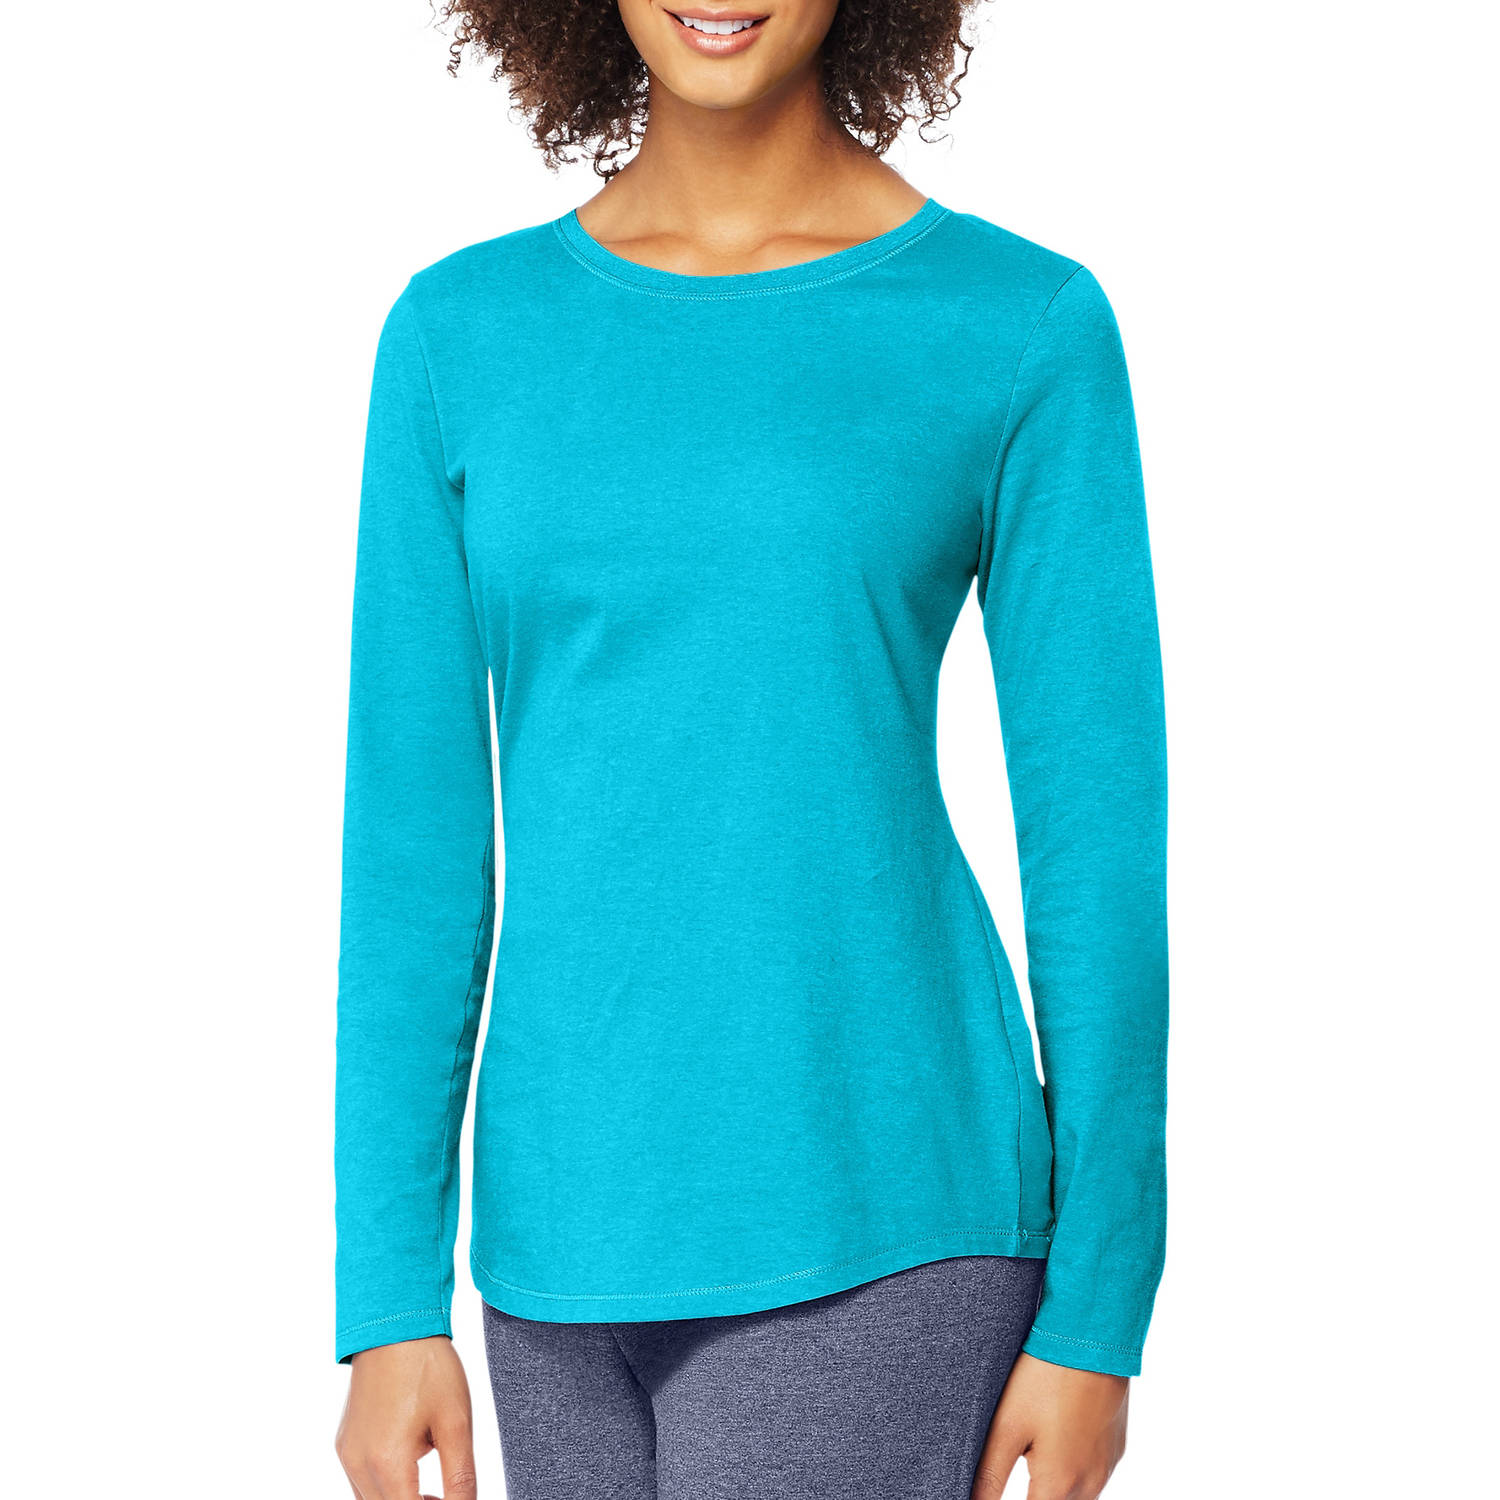 Hanes Women's Long Sleeve T-shirt